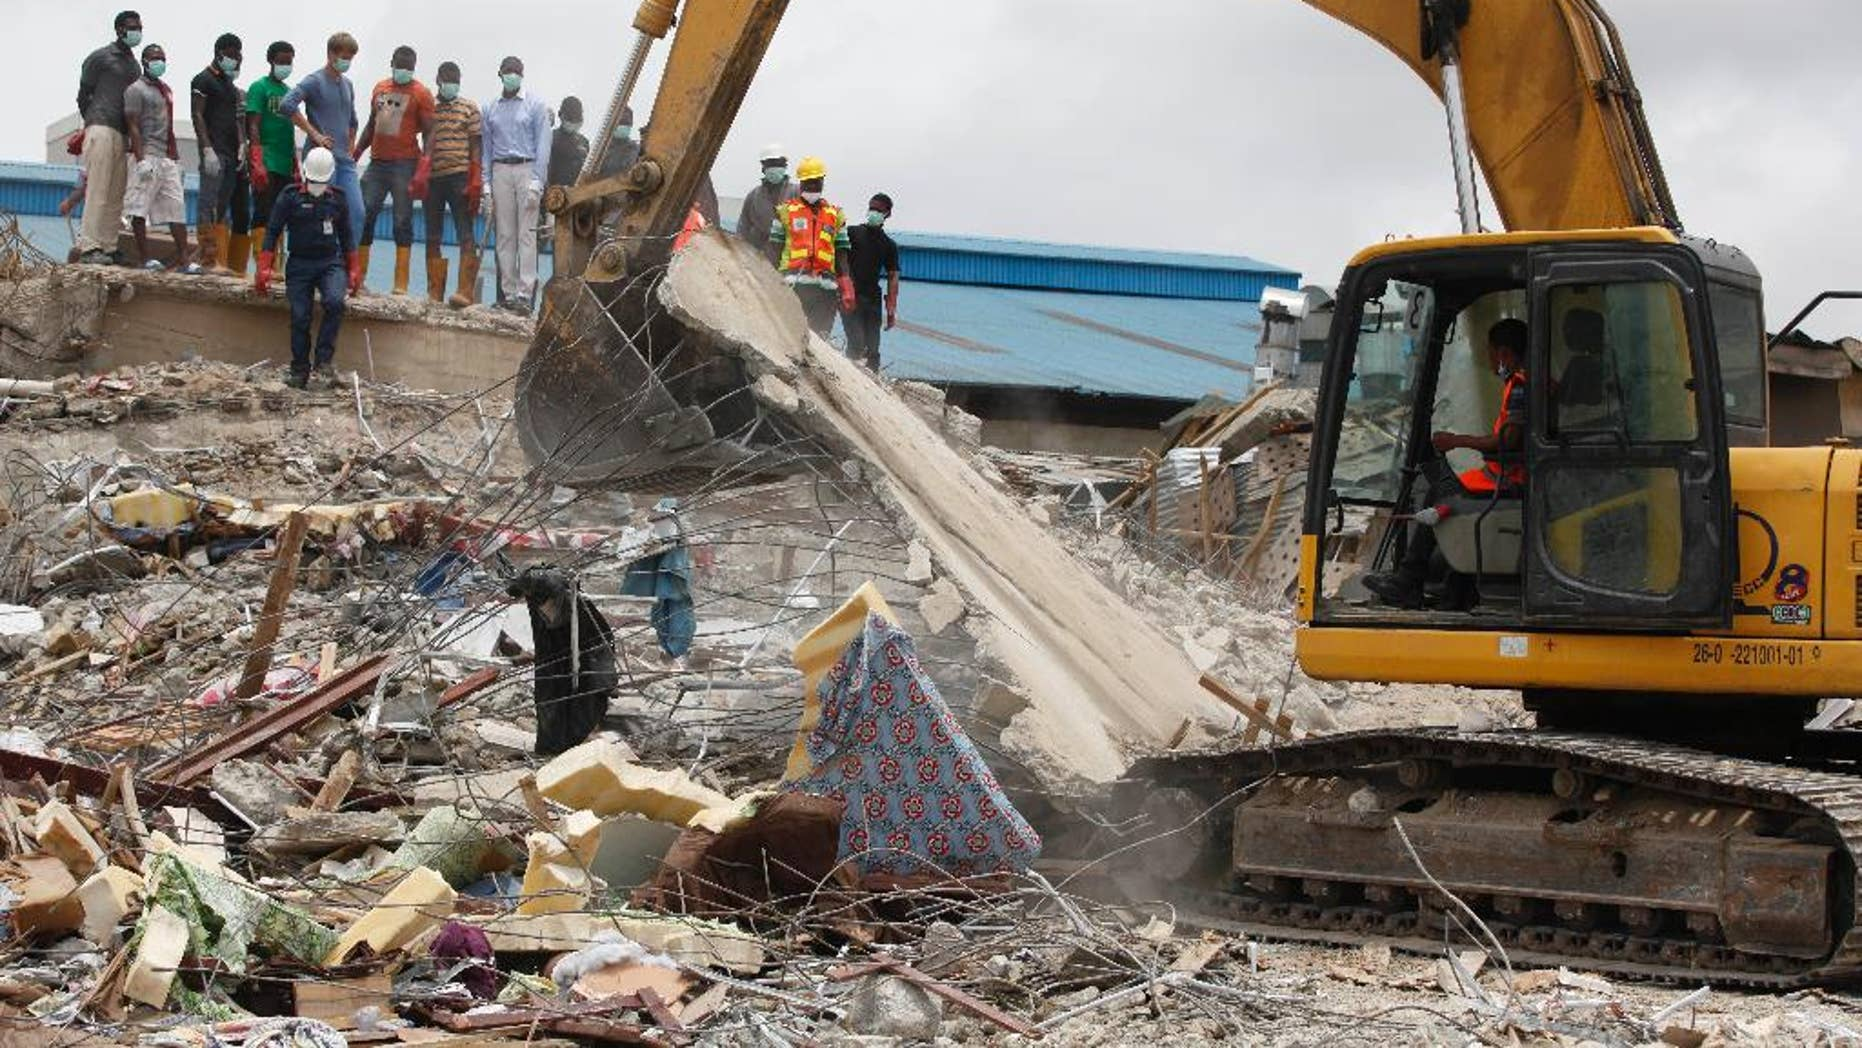 FILE - In this Wednesday, Sept. 17, 2014 file photo, rescue workers search for survivors in the rubble of a collapsed building belonging to the Synagogue Church of All Nations in Lagos, Nigeria. The Synagogue Church of All Nations of televangelist T. B. Joshua on Thursday, July 9, 2015 rejected a coroner's report recommending prosecution of the Nigerian church and two structural engineers in the collapse of a church building that killed 116 people, most of them visitors from South Africa. (AP Photo/Sunday Alamba, File)